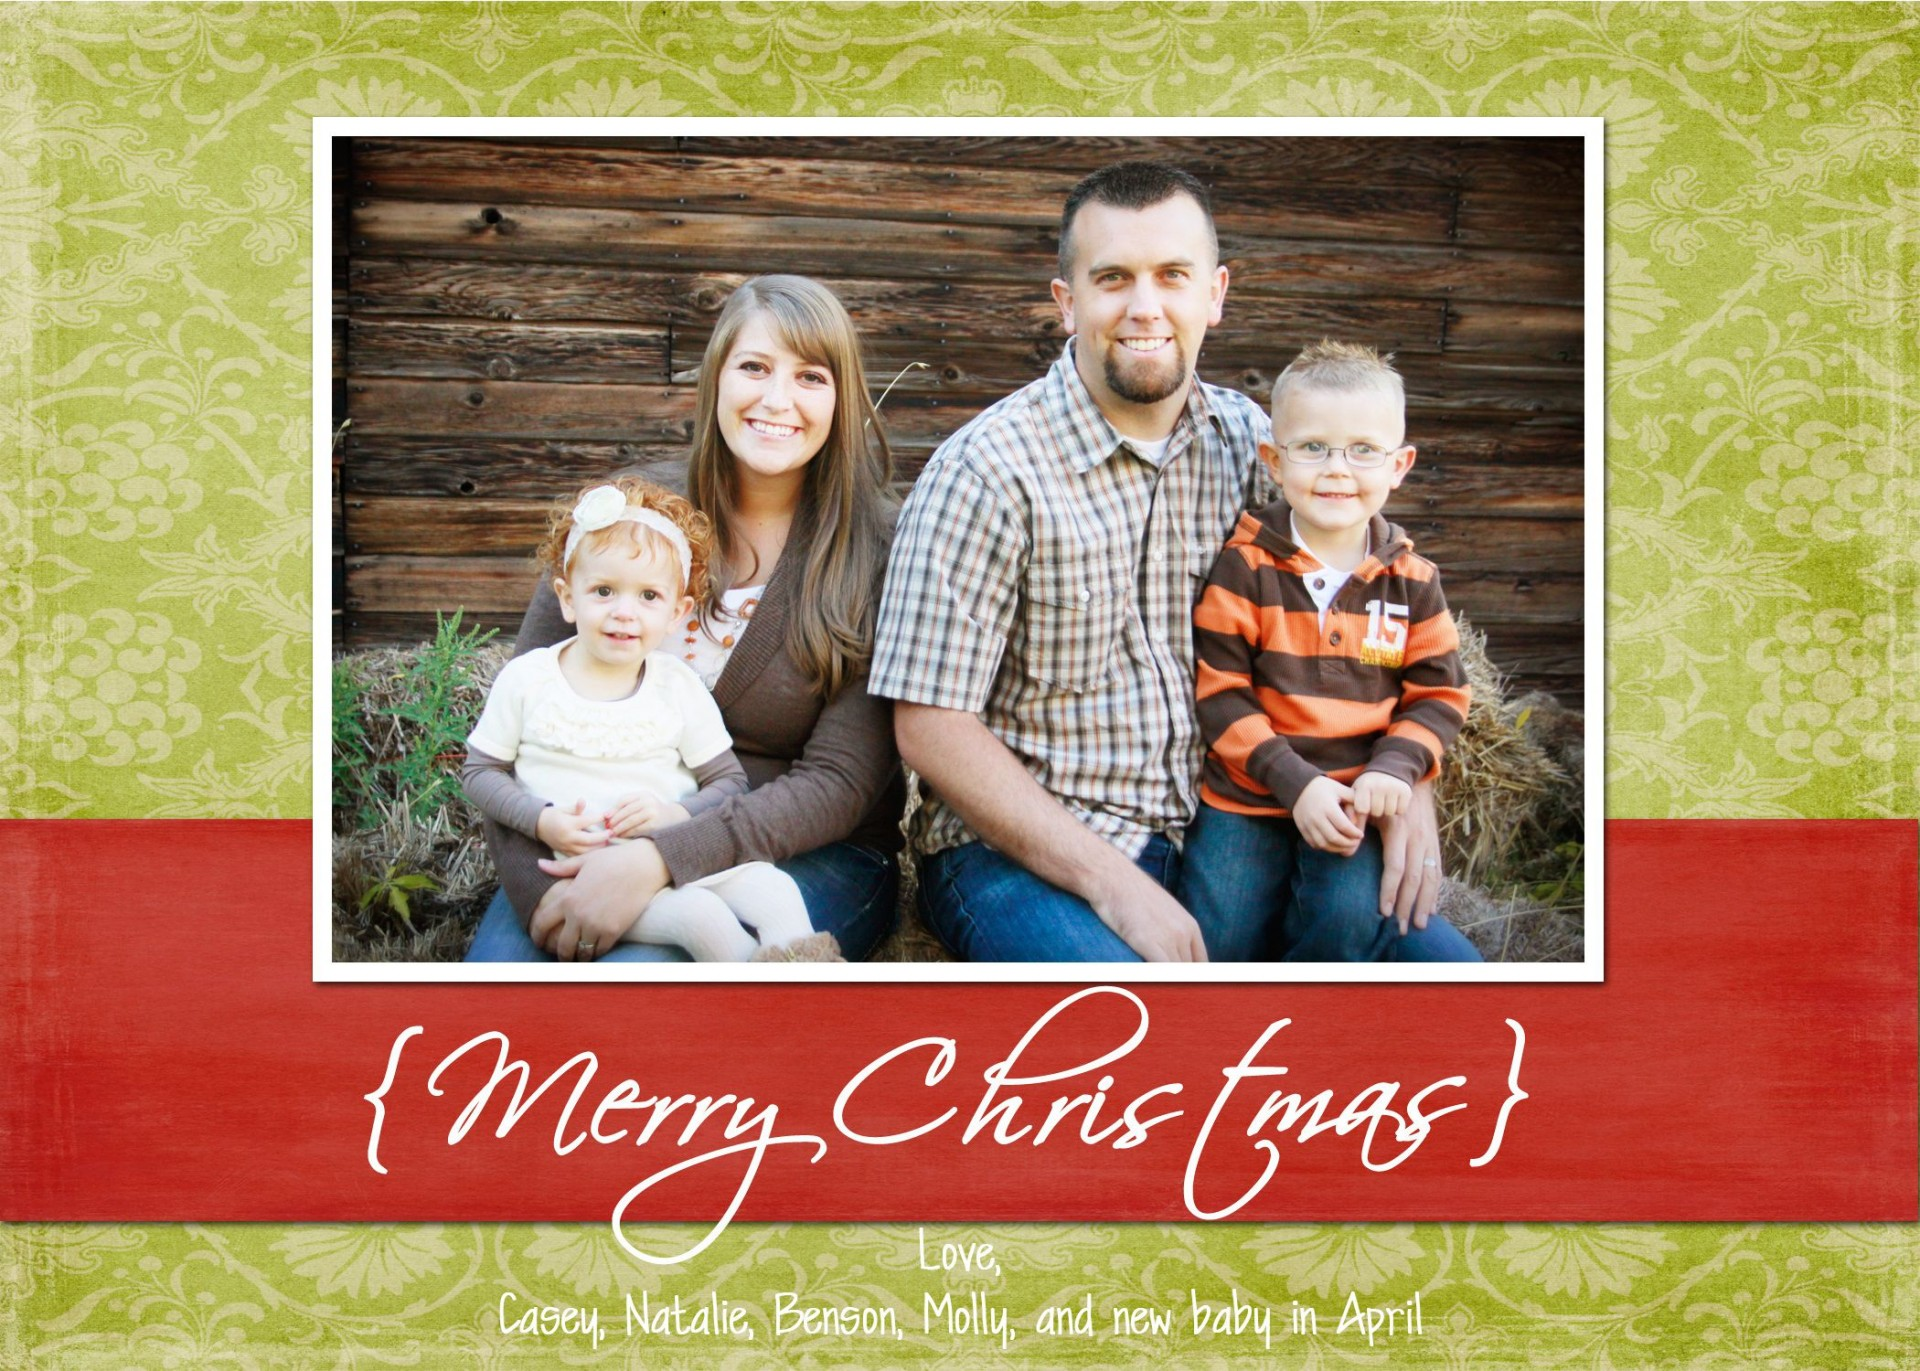 005 Excellent Christma Card Template Photoshop Idea  Free Download Funny1920